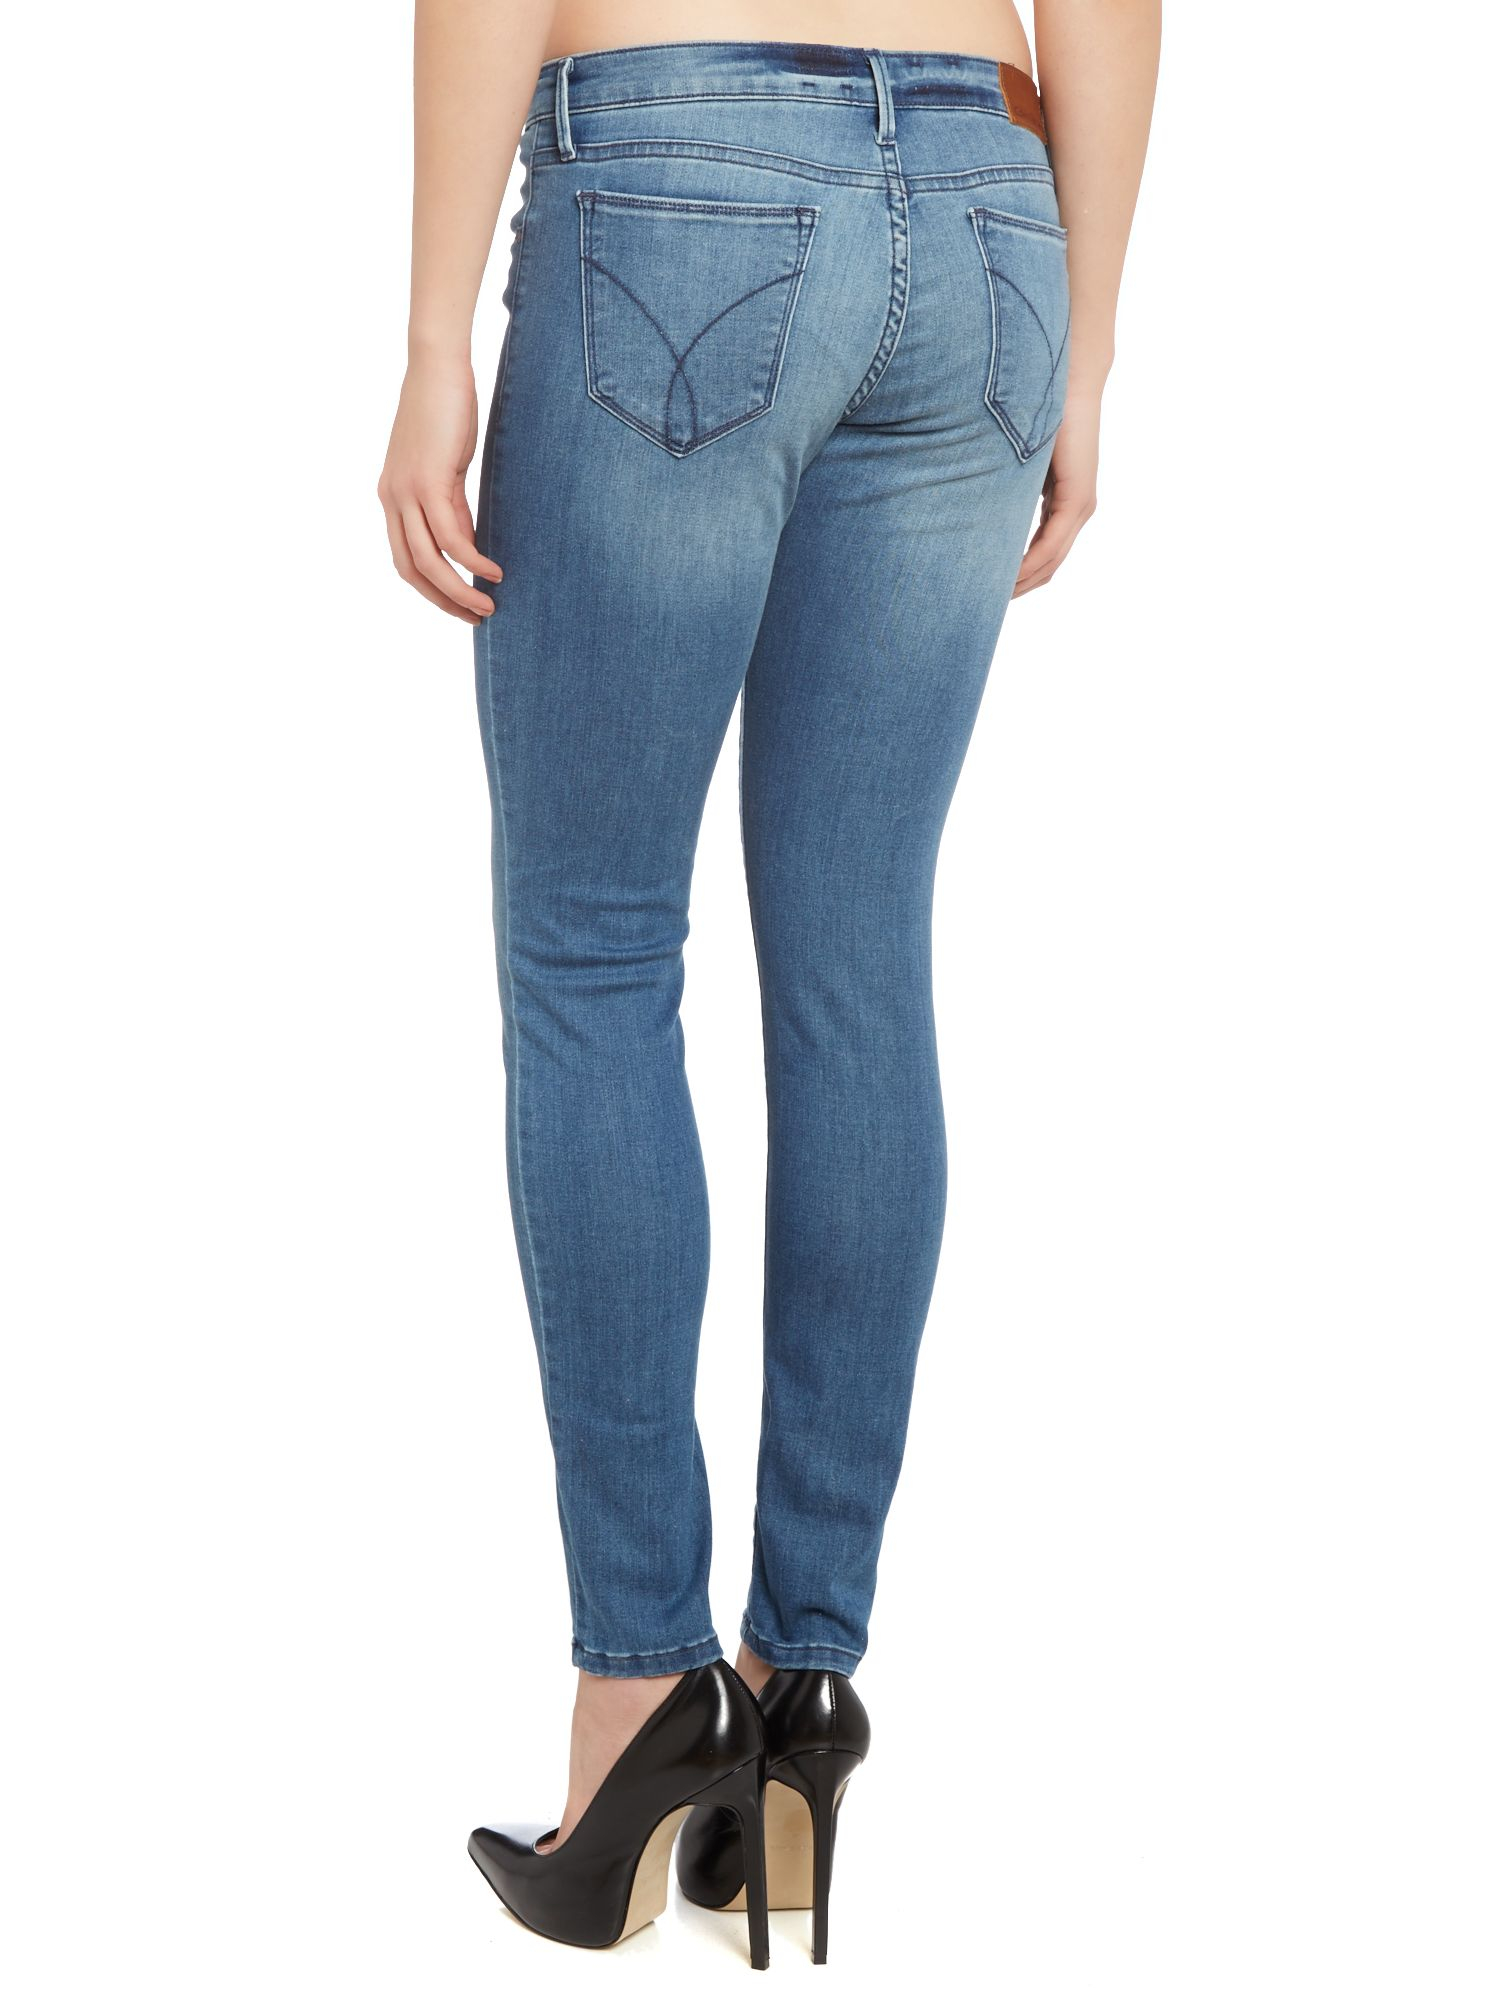 mid rise skinny jeans - Blue Calvin Klein Jeans jWlXVyAzhS